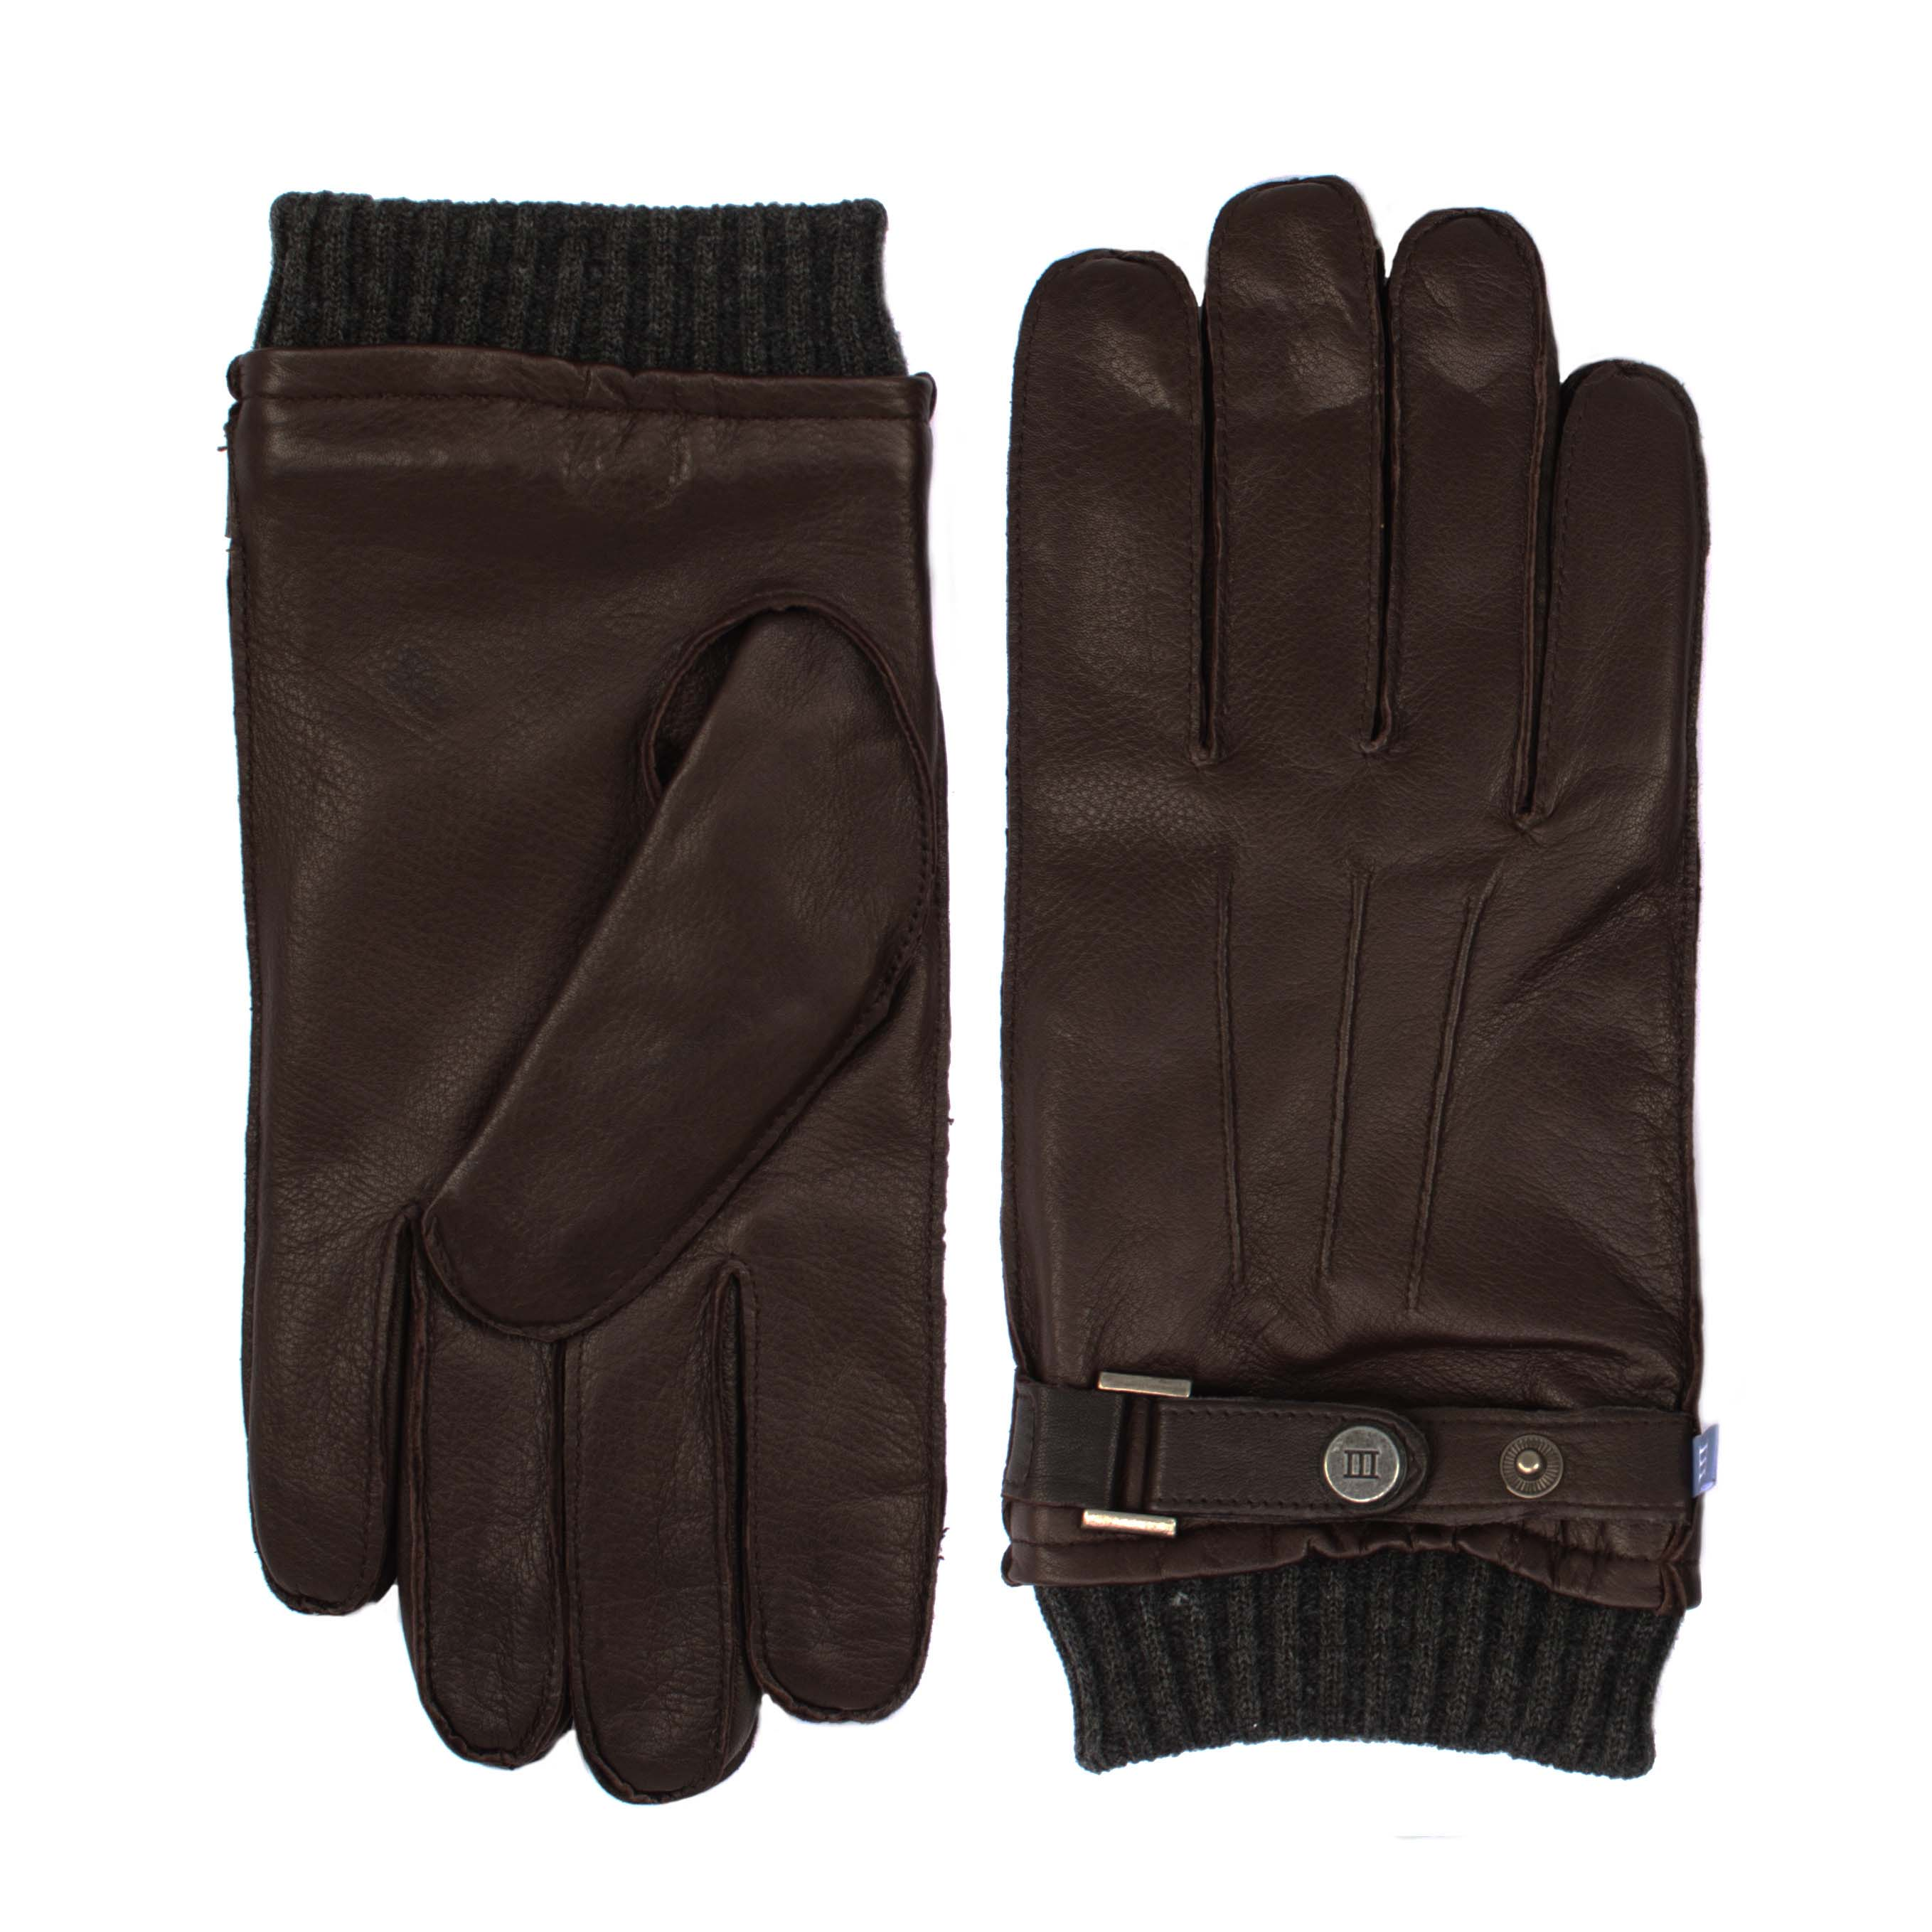 Brown analine sheepleather gloves with knitted cuff